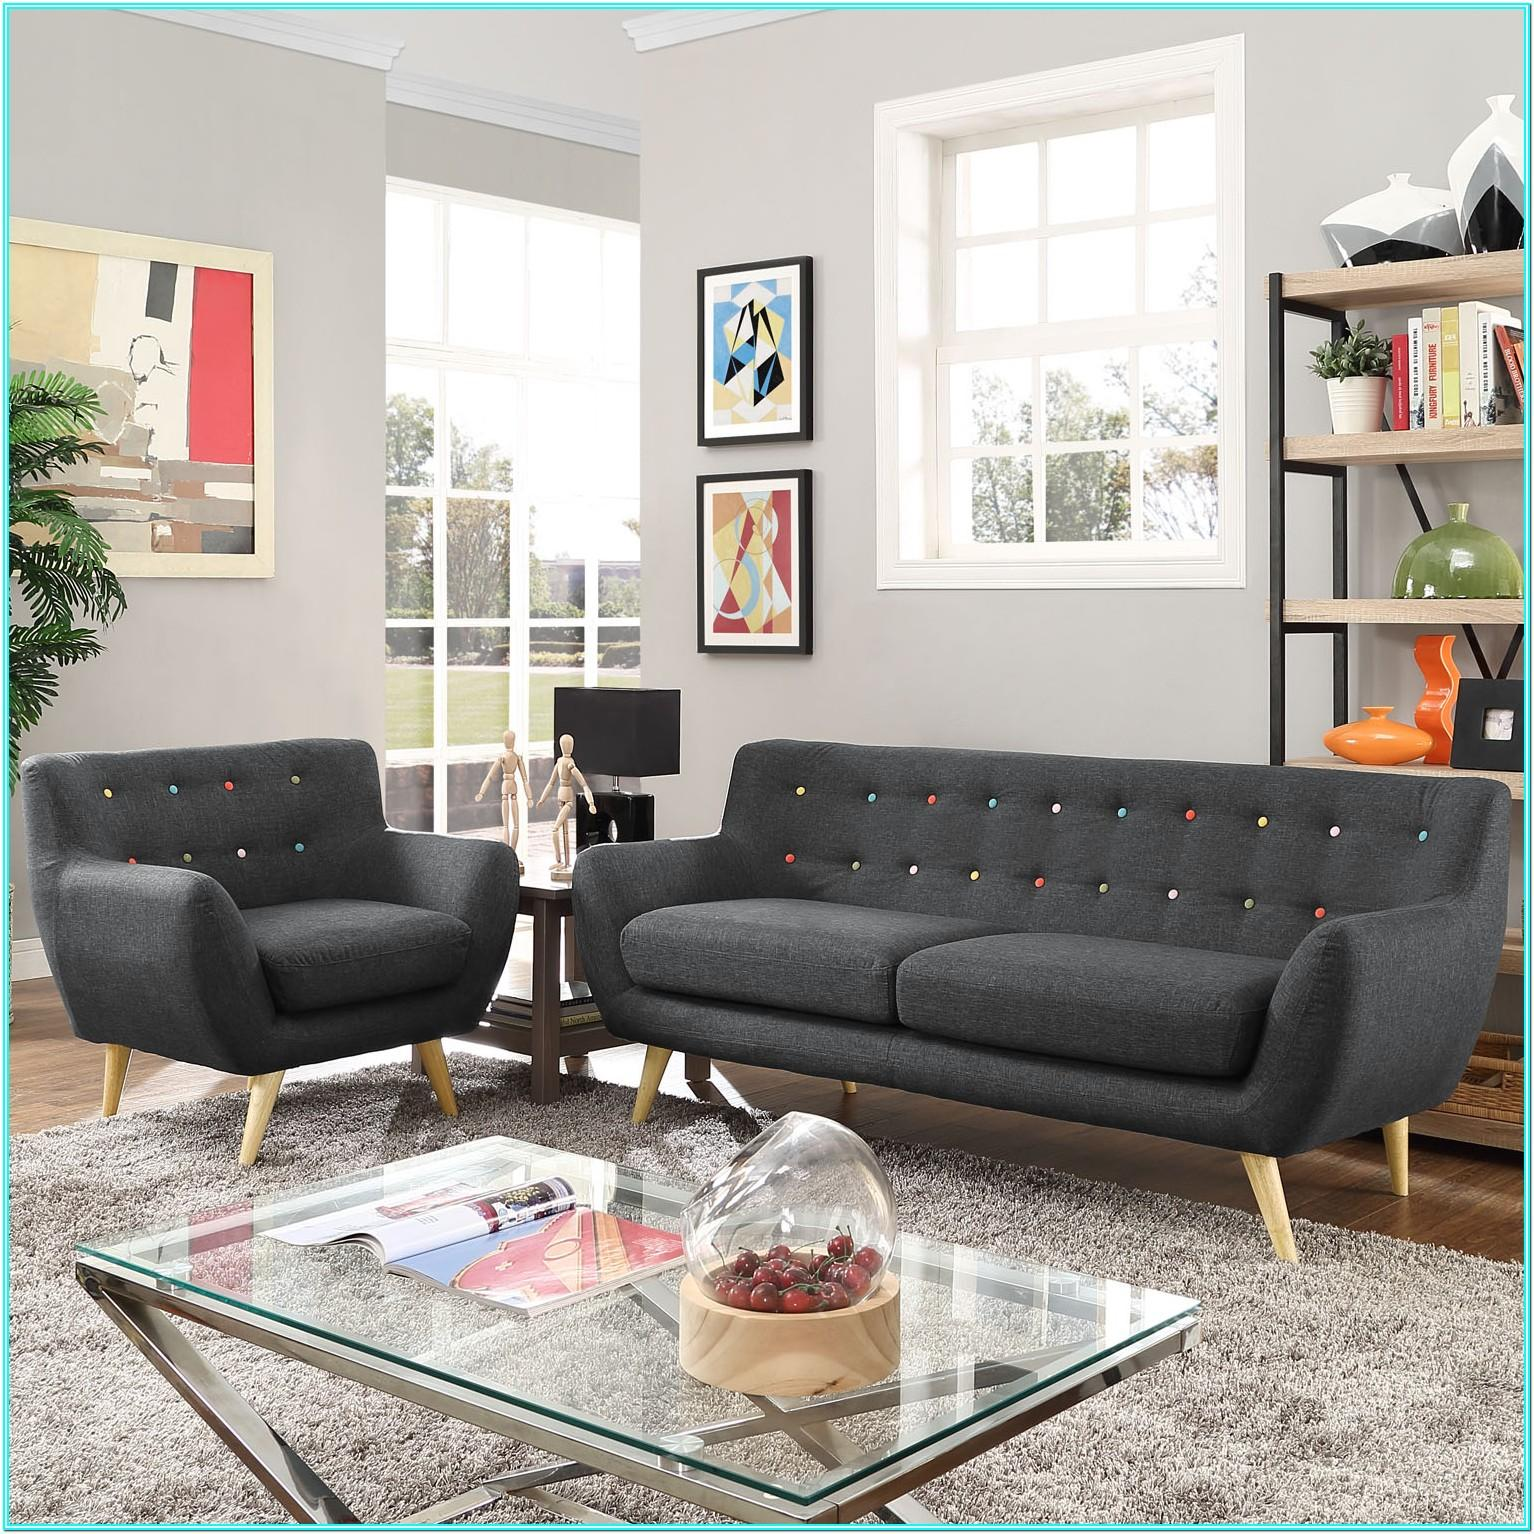 Small Living Room Couch Set Up